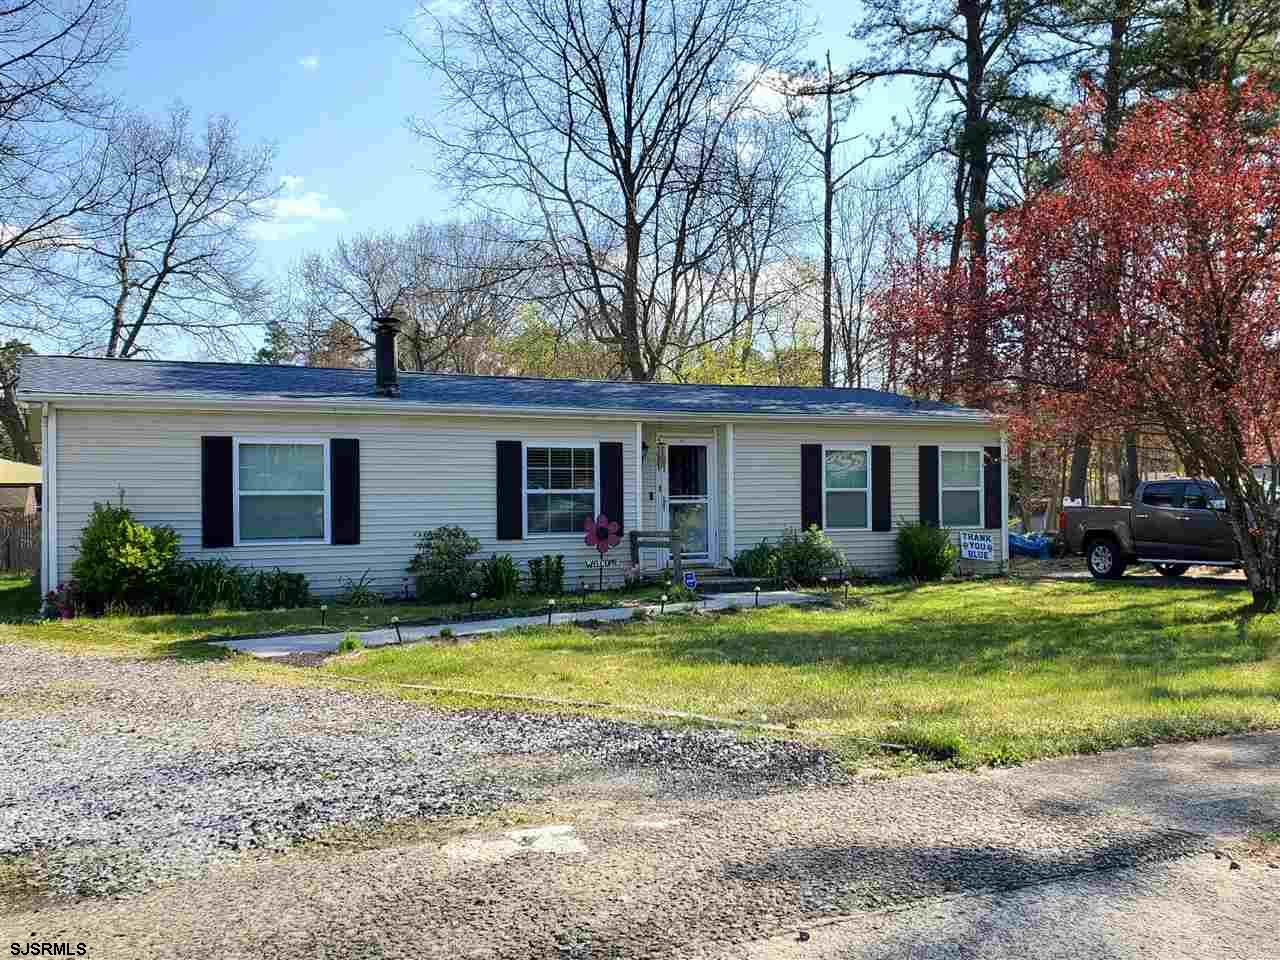 Adorable 3 bedroom 2 bath ranch in desirable Mullica Township, near recreation park and school.Total